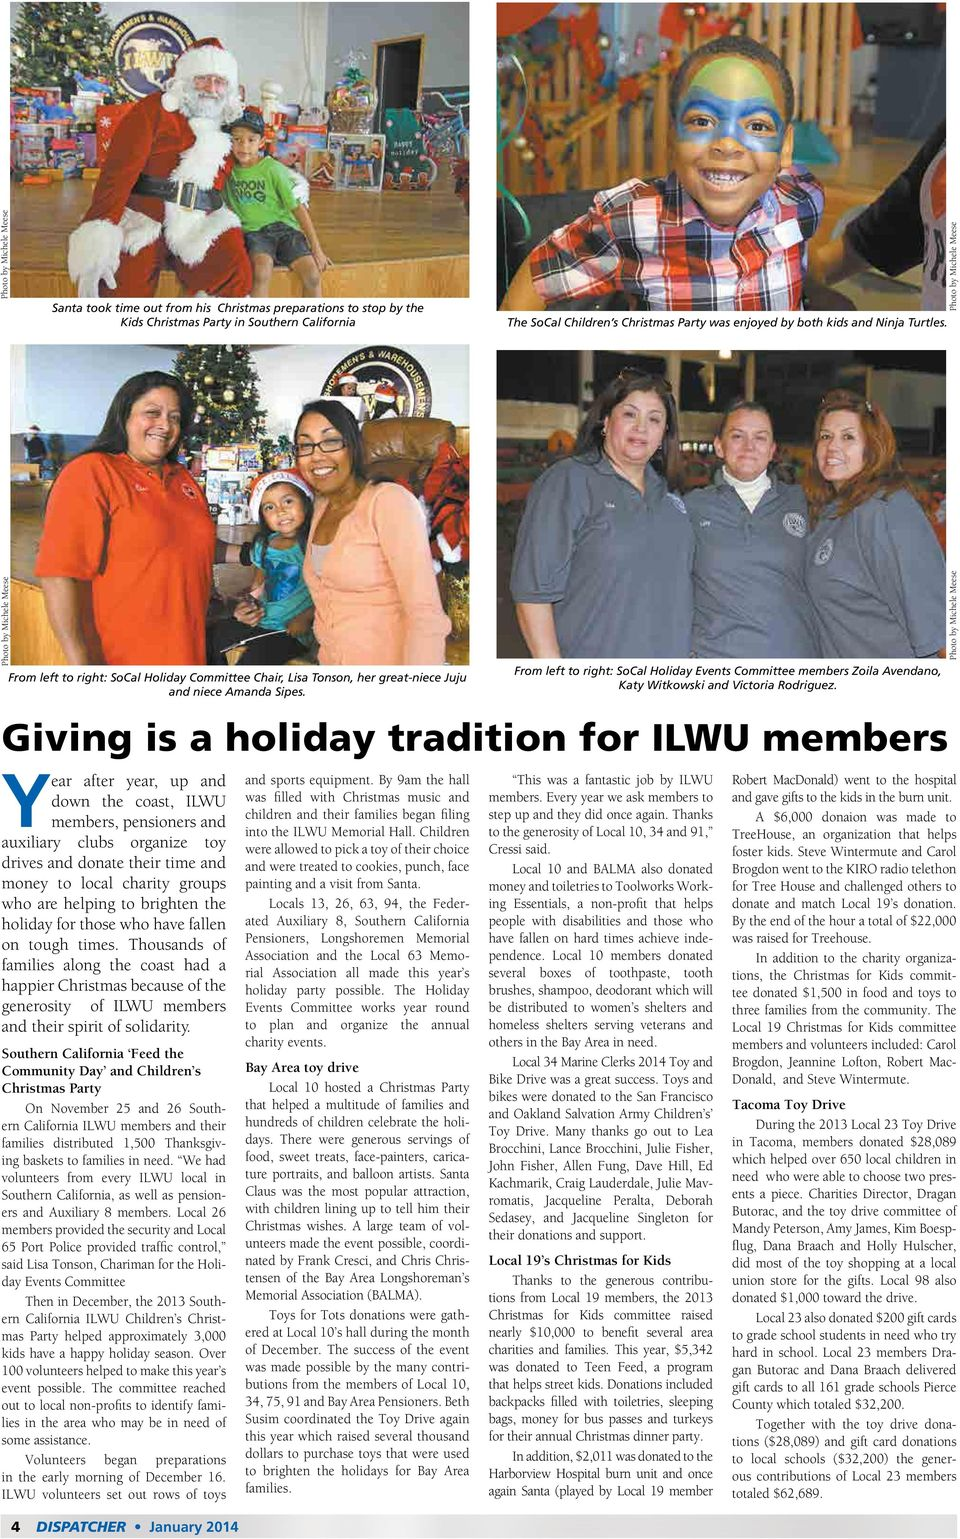 Giving is a holiday tradition for ILWU members Year after year, up and down the coast, ILWU members, pensioners and auxiliary clubs organize toy drives and donate their time and money to local